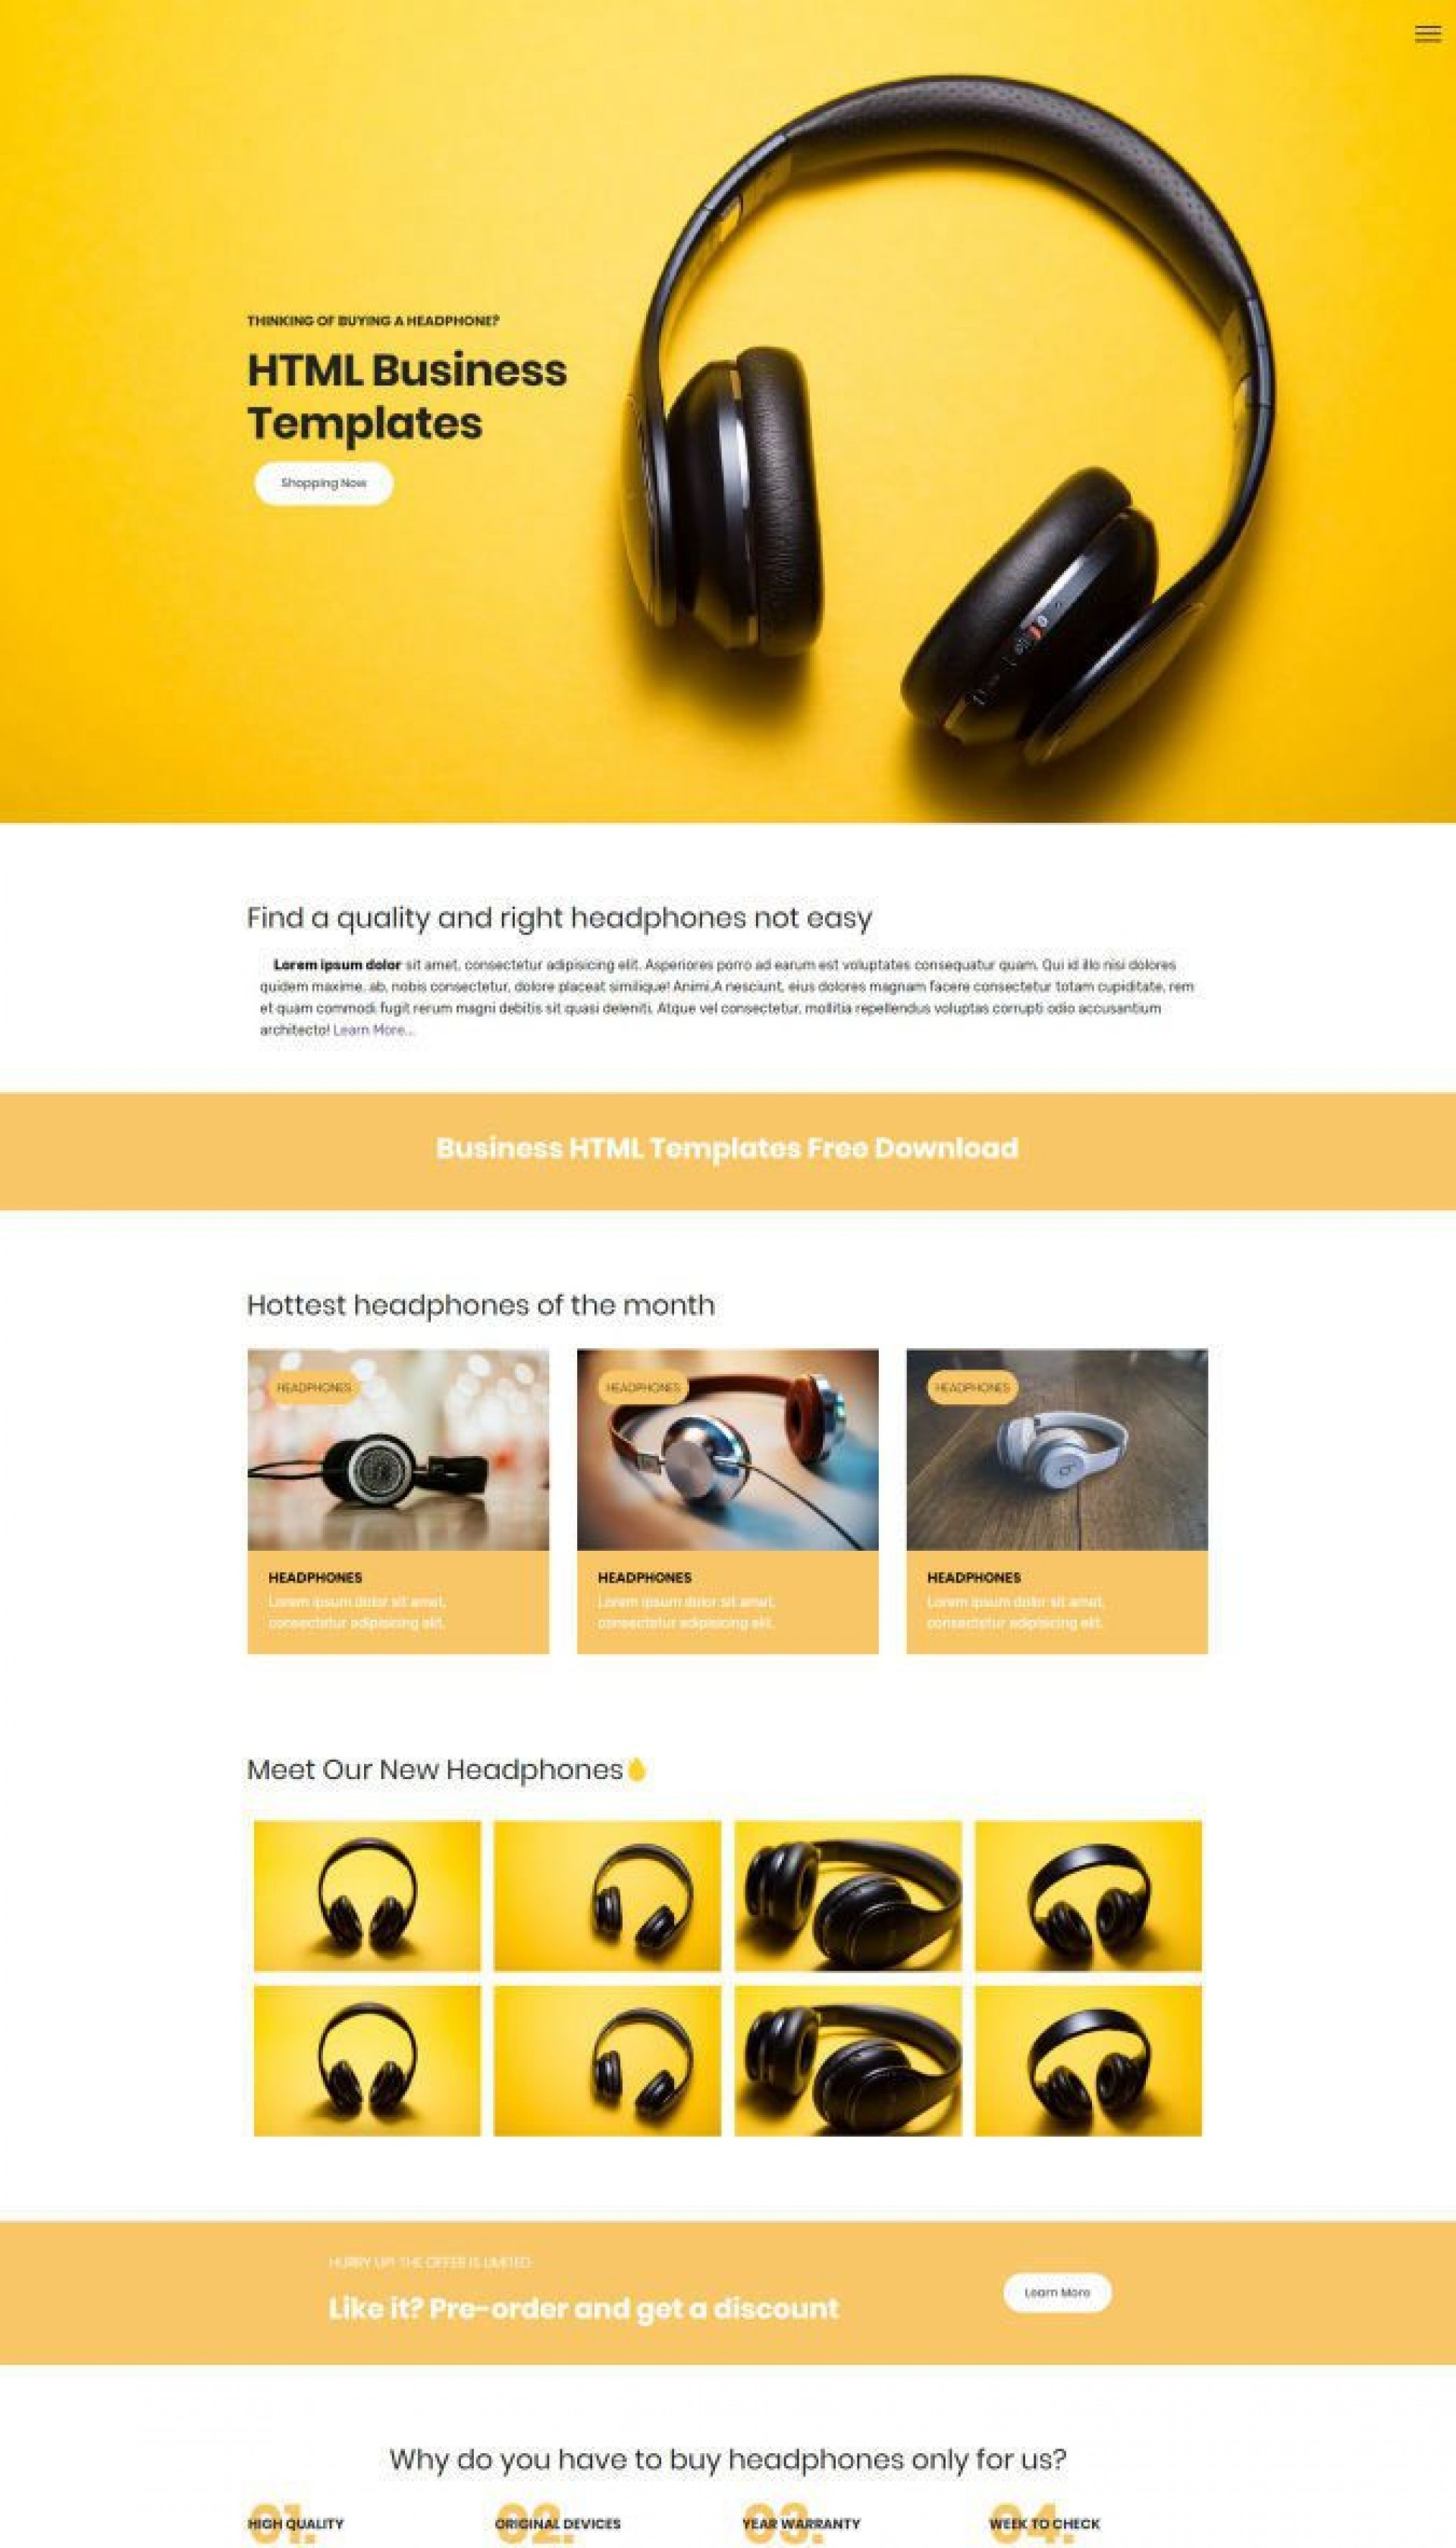 003 Fascinating Simple Web Page Template Free Download Concept  One Website Html With Cs1920